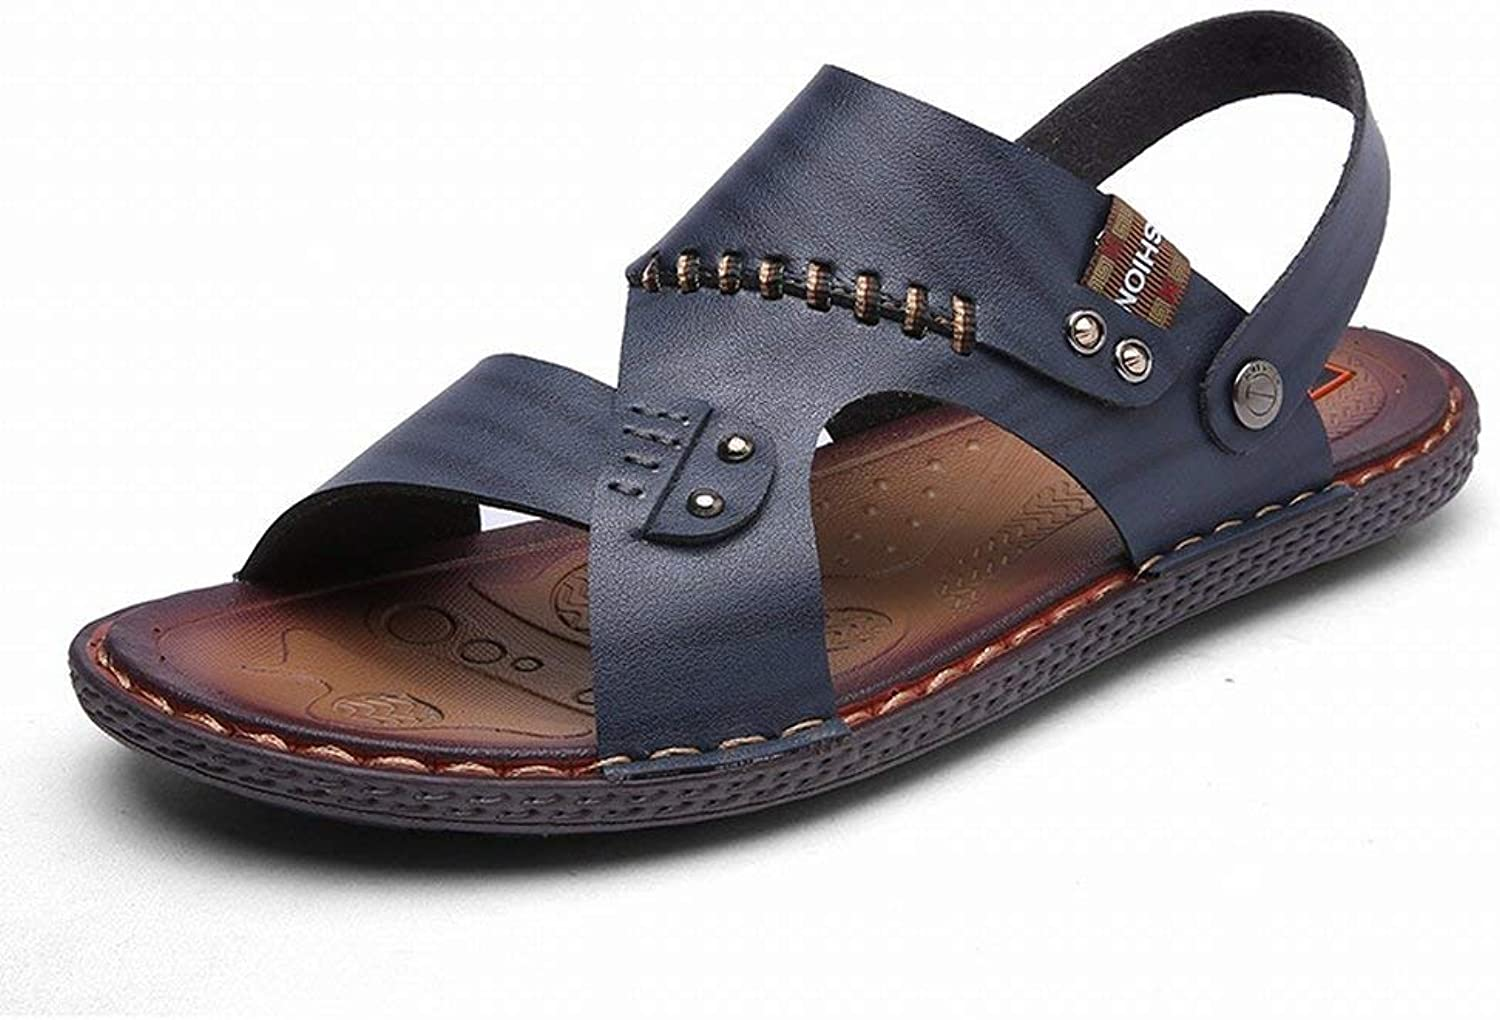 Fuxitoggo Fashion Handmade Sandals Comfort All Match Slippers Slip Two Wear Men's Sandals (color   bluee, Size   42)